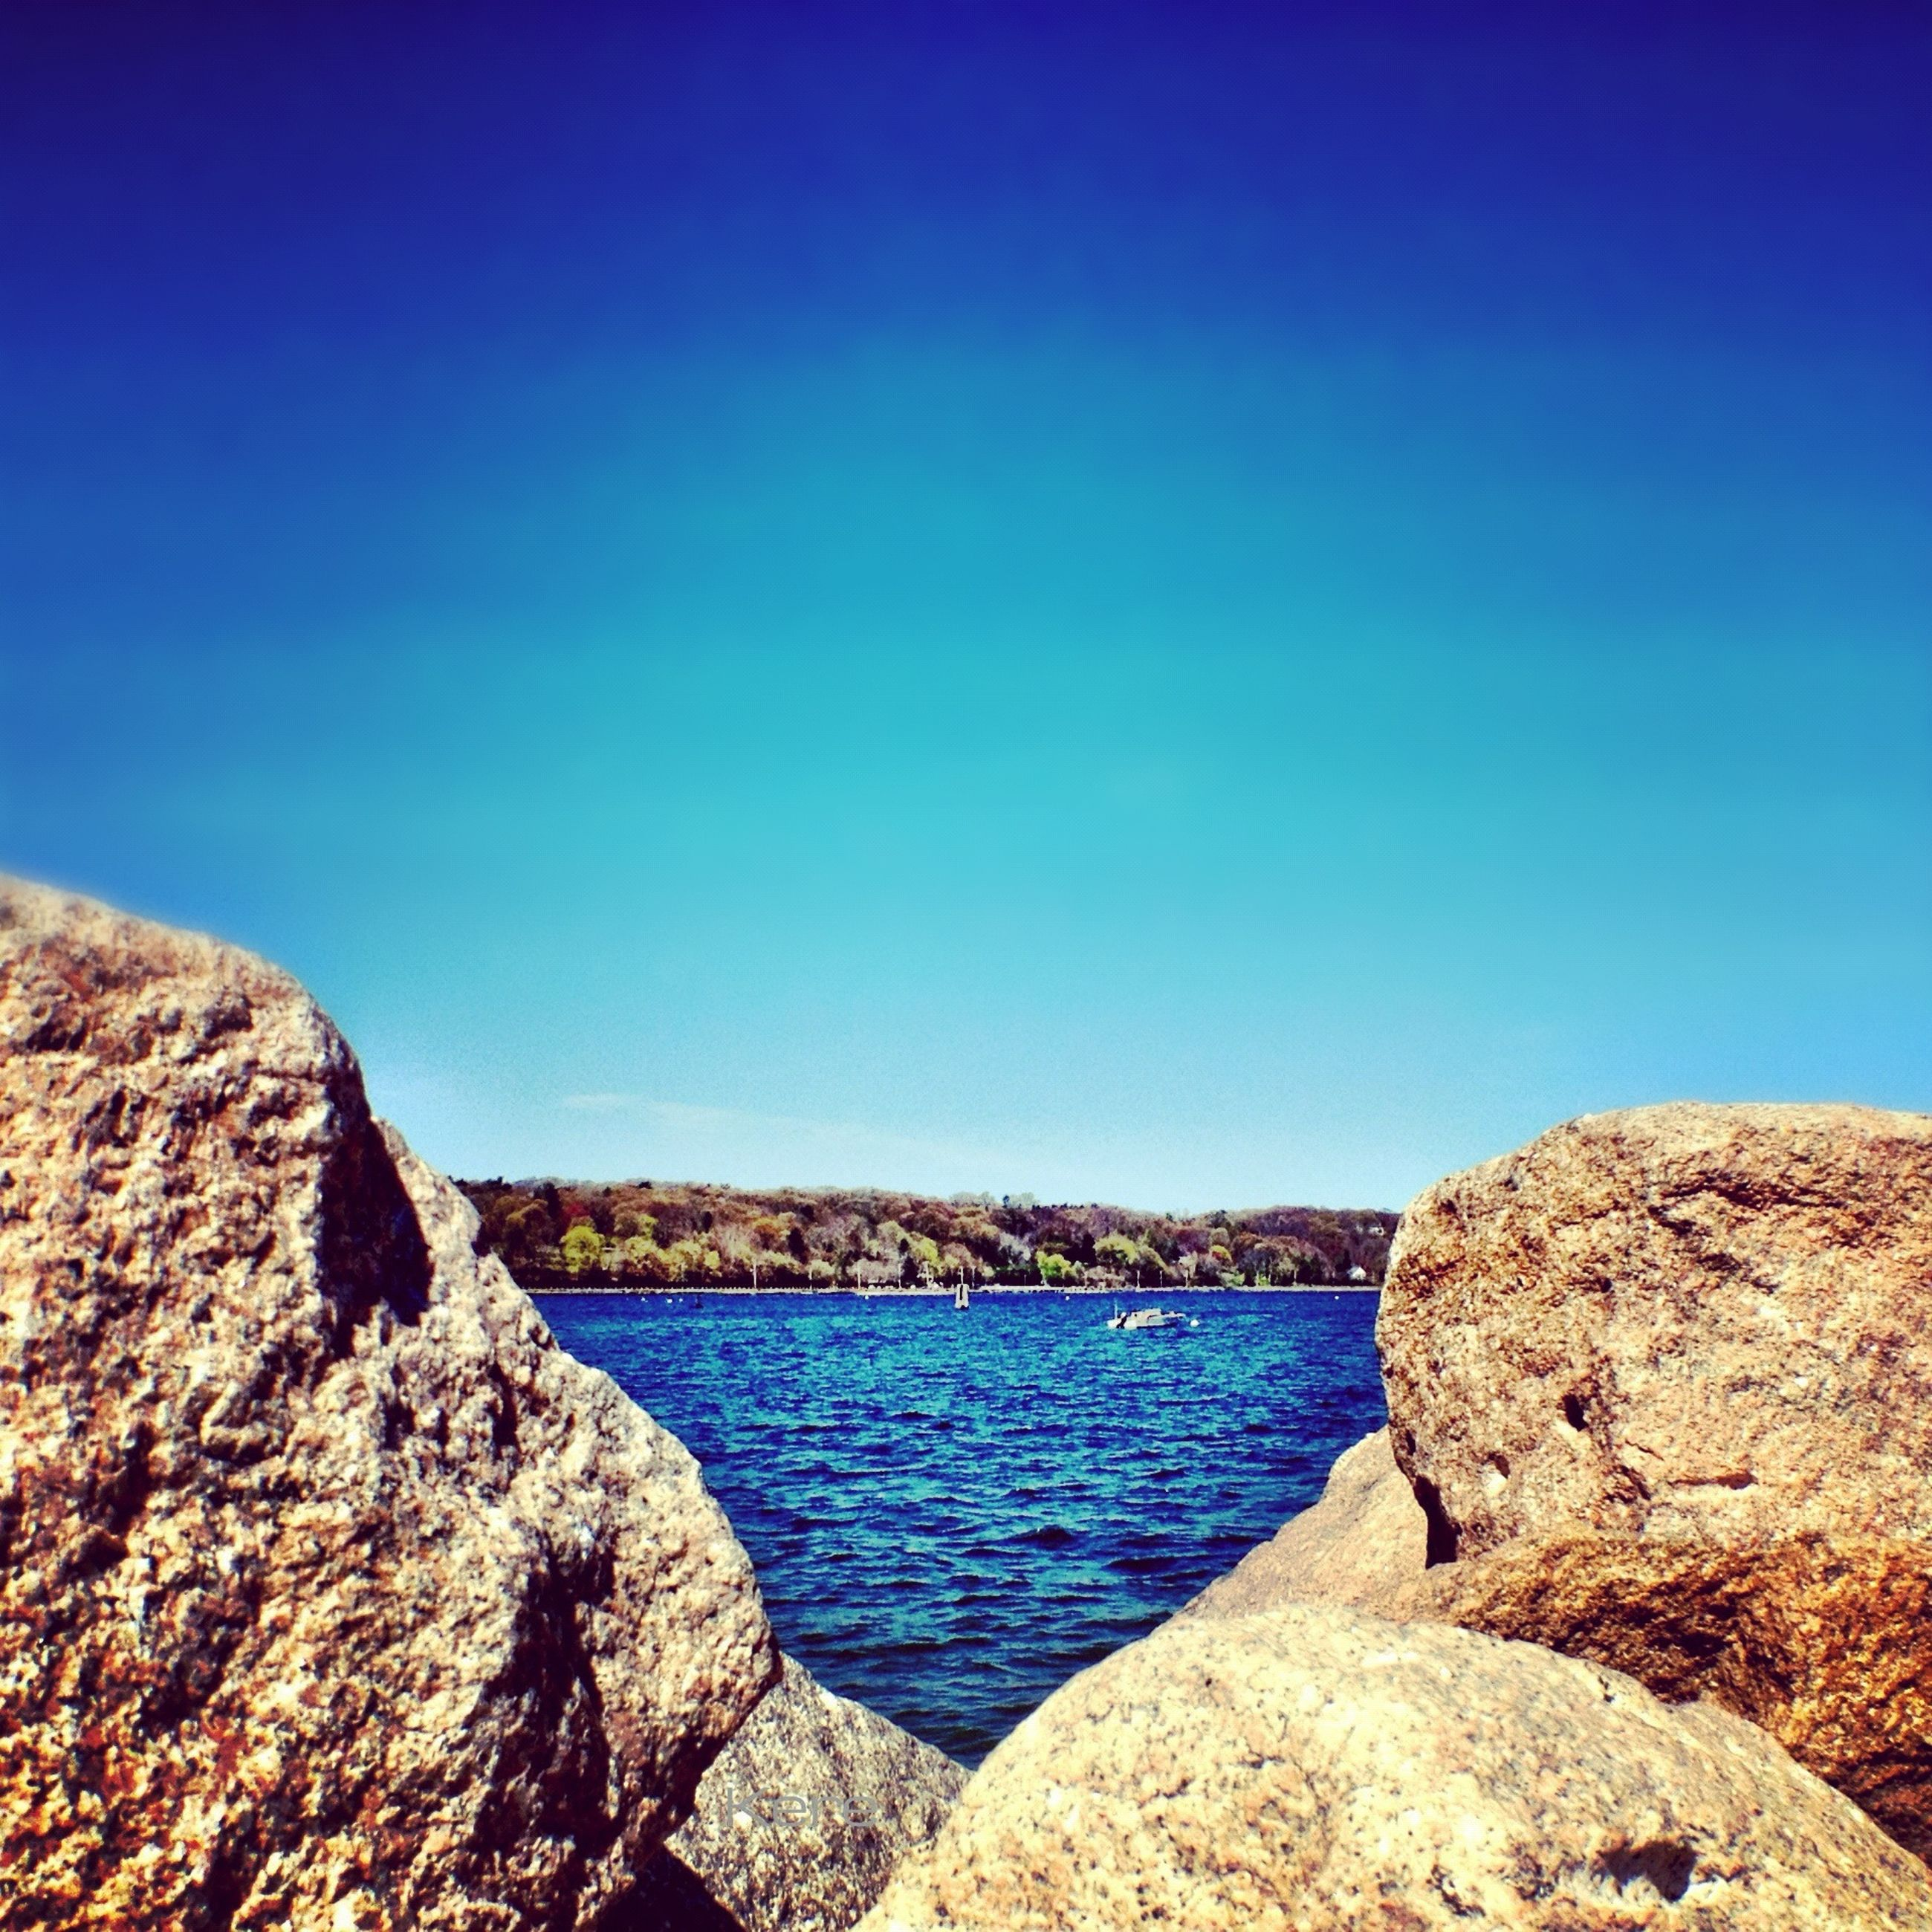 blue, clear sky, water, copy space, tranquil scene, tranquility, scenics, sea, beauty in nature, rock - object, nature, rock, rock formation, idyllic, day, calm, outdoors, sunlight, no people, shore